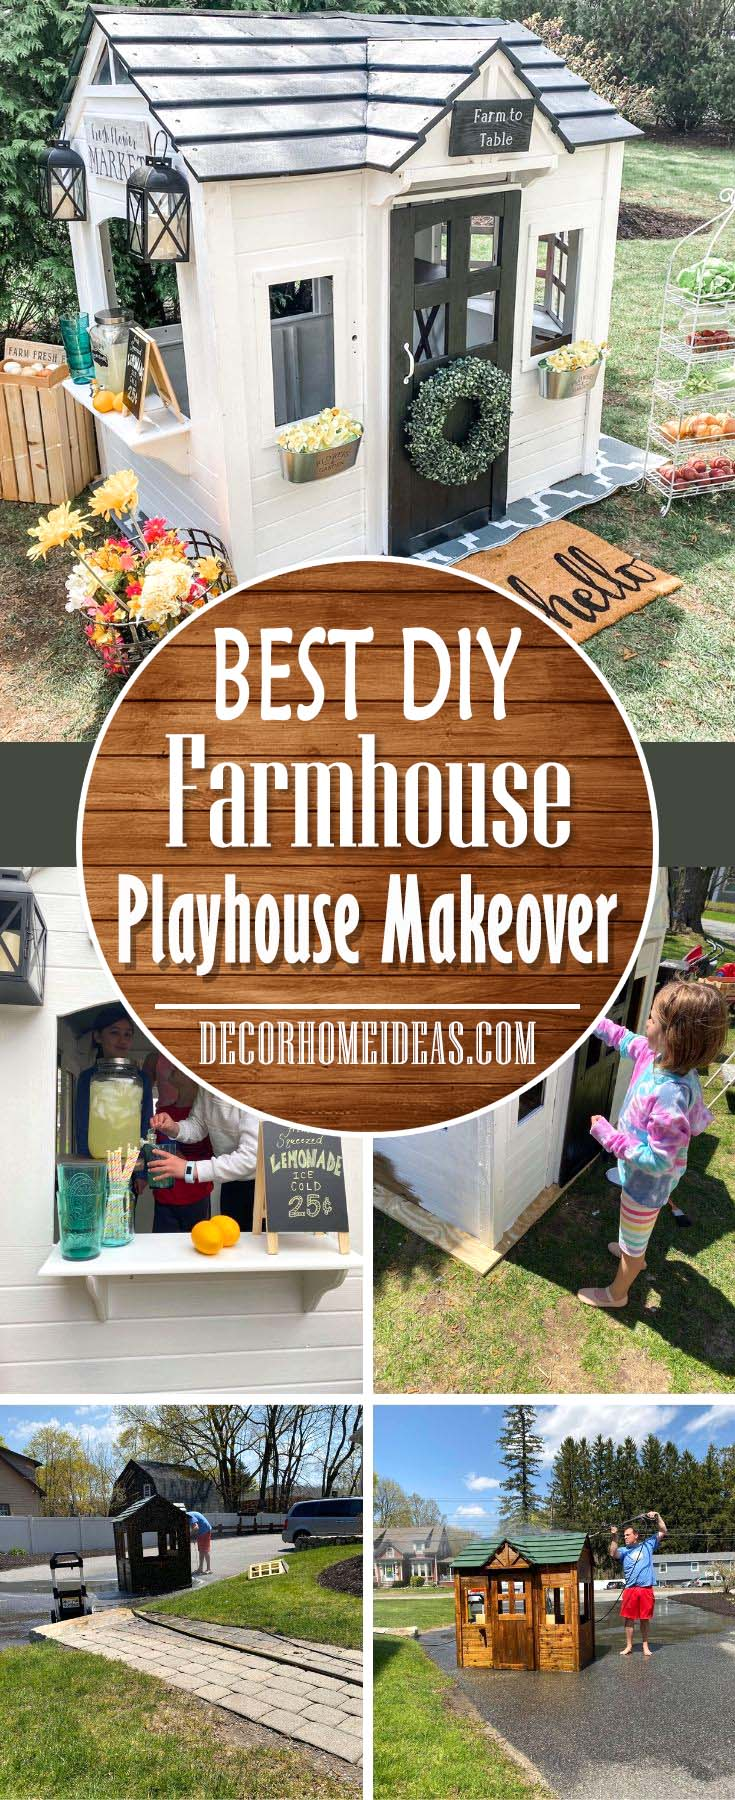 DIY Outdoor Farmhouse Playhouse Makeover. How to convert and old and worn playhouse into an adorable outdoor farmhouse style playhouse. #farmhouse #playhouse #makeover #diy #decorhomeideas